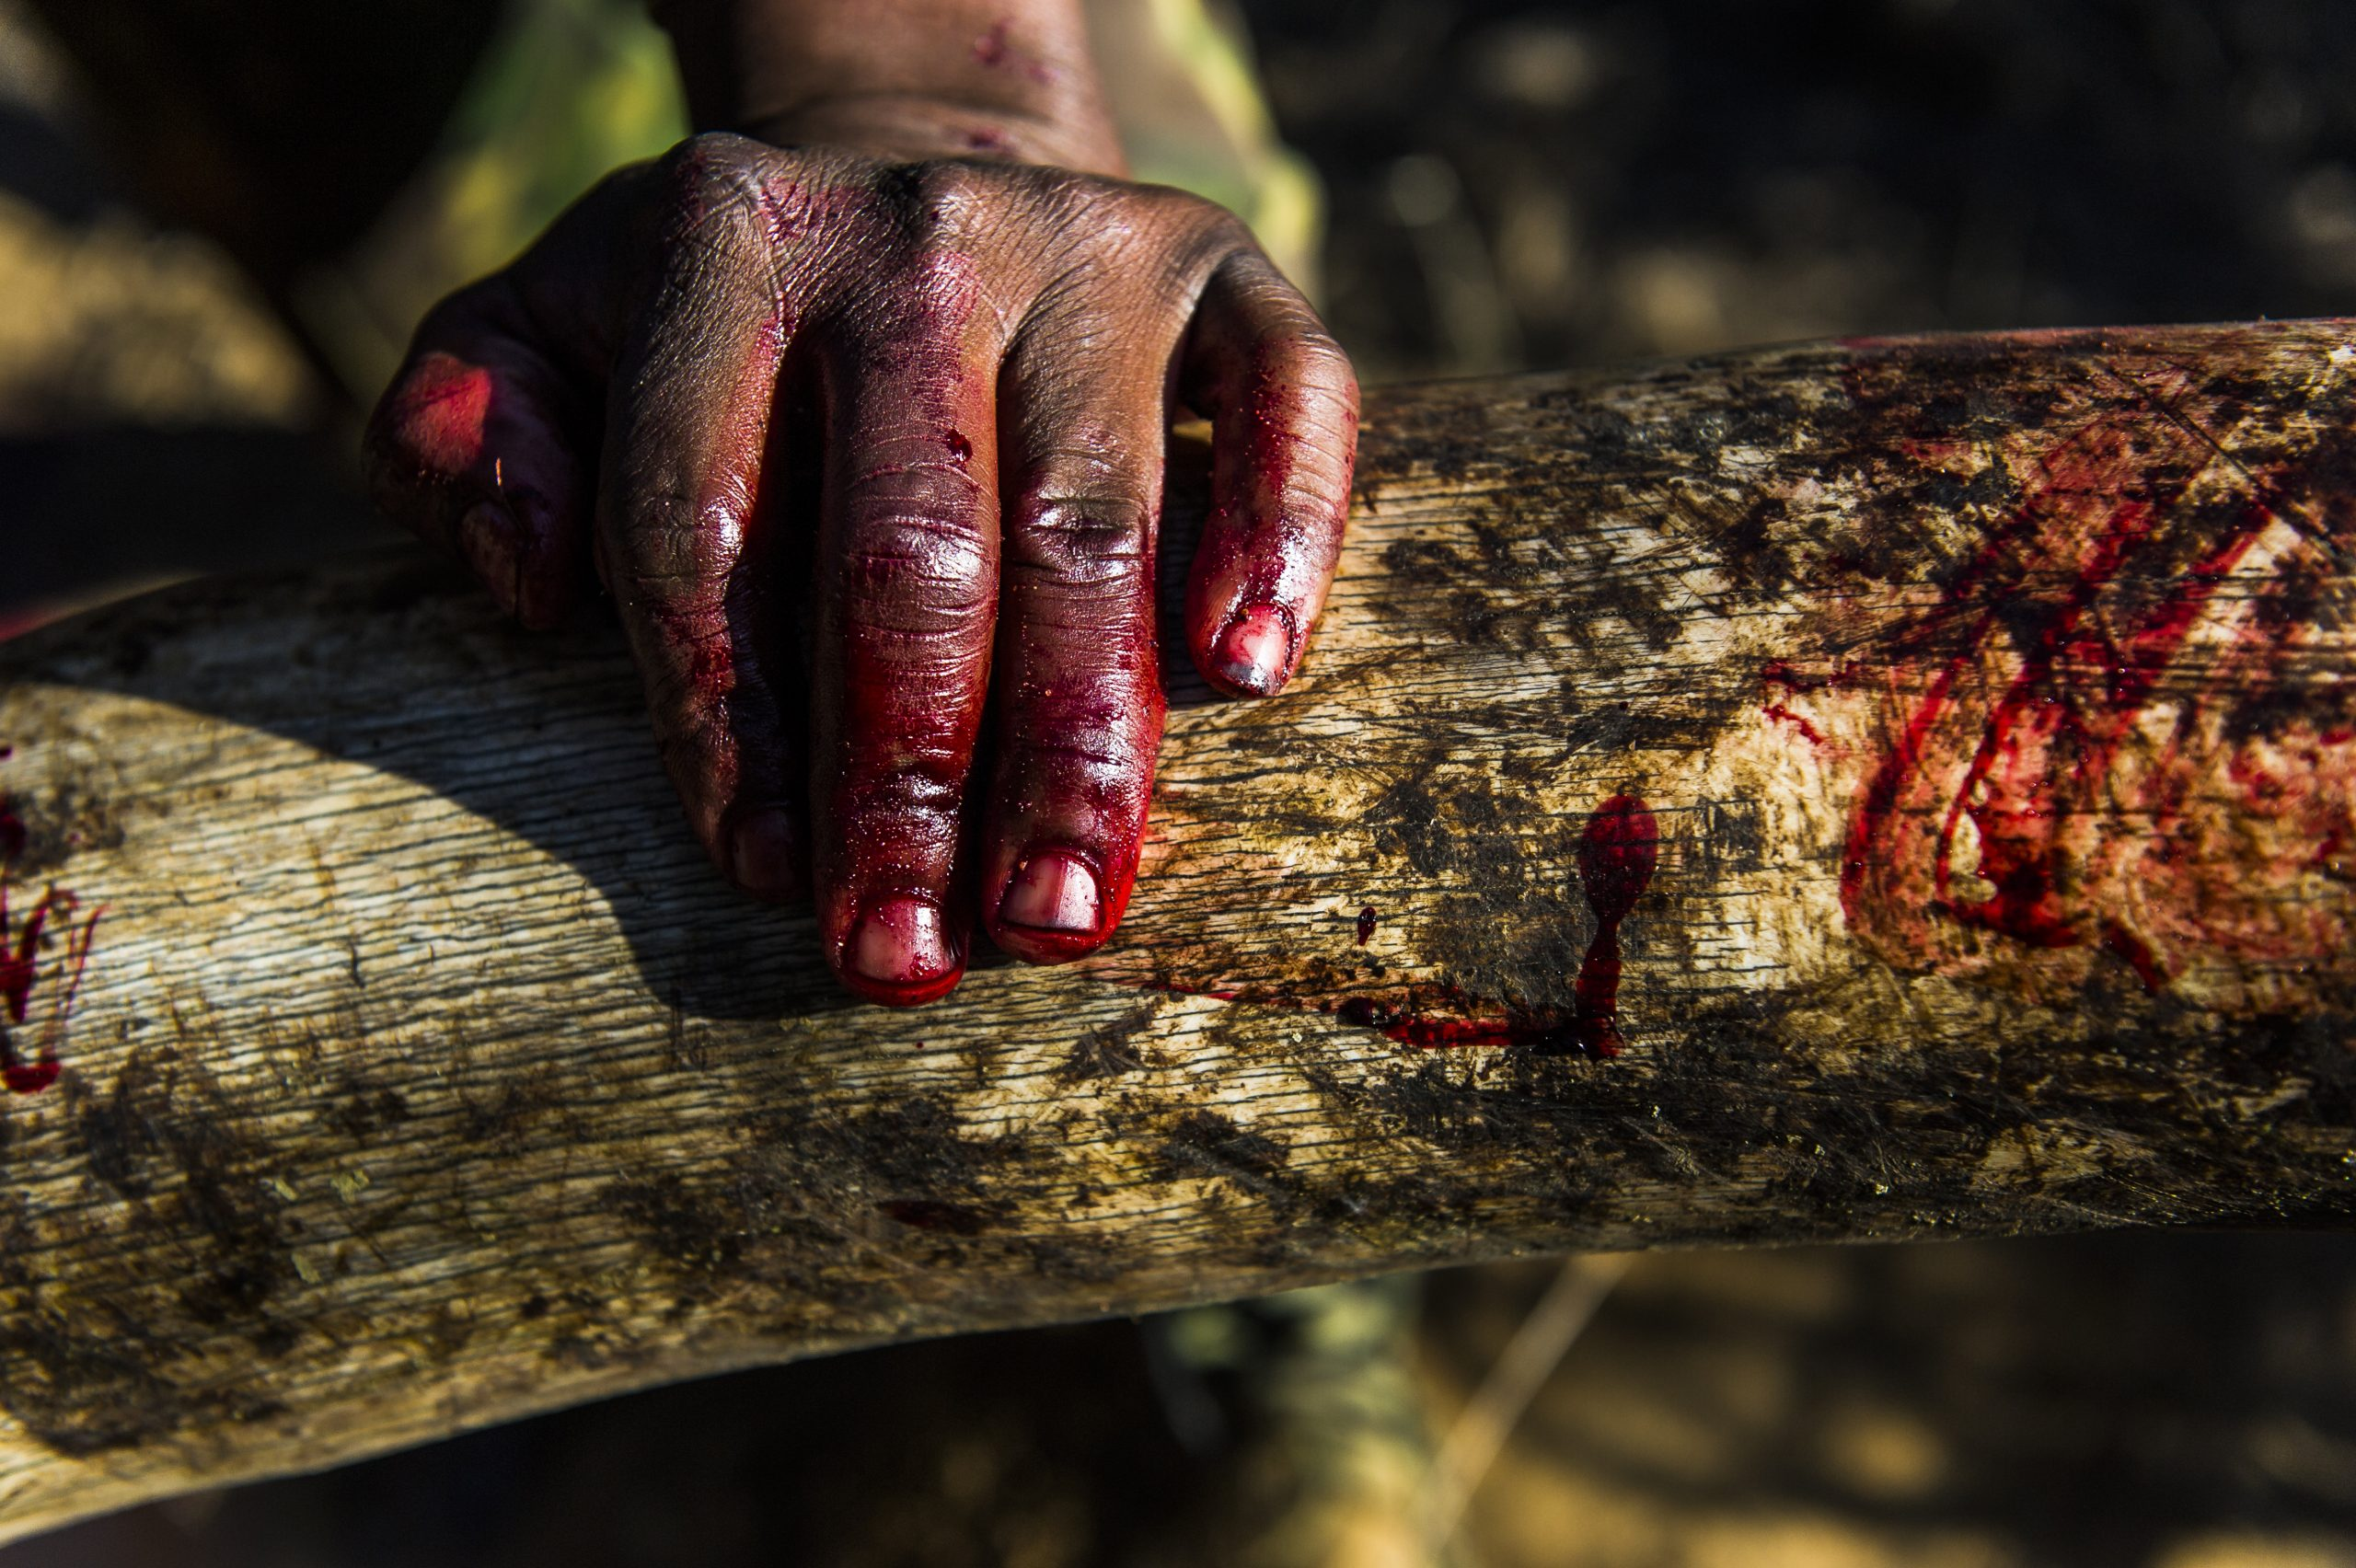 A ranger's bloody hand rests on an ivory tusk during an anti-poaching mission in KwaZulu-Natal, South Africa © Britta Jaschinski / Photographers Against Wildlife Crime™